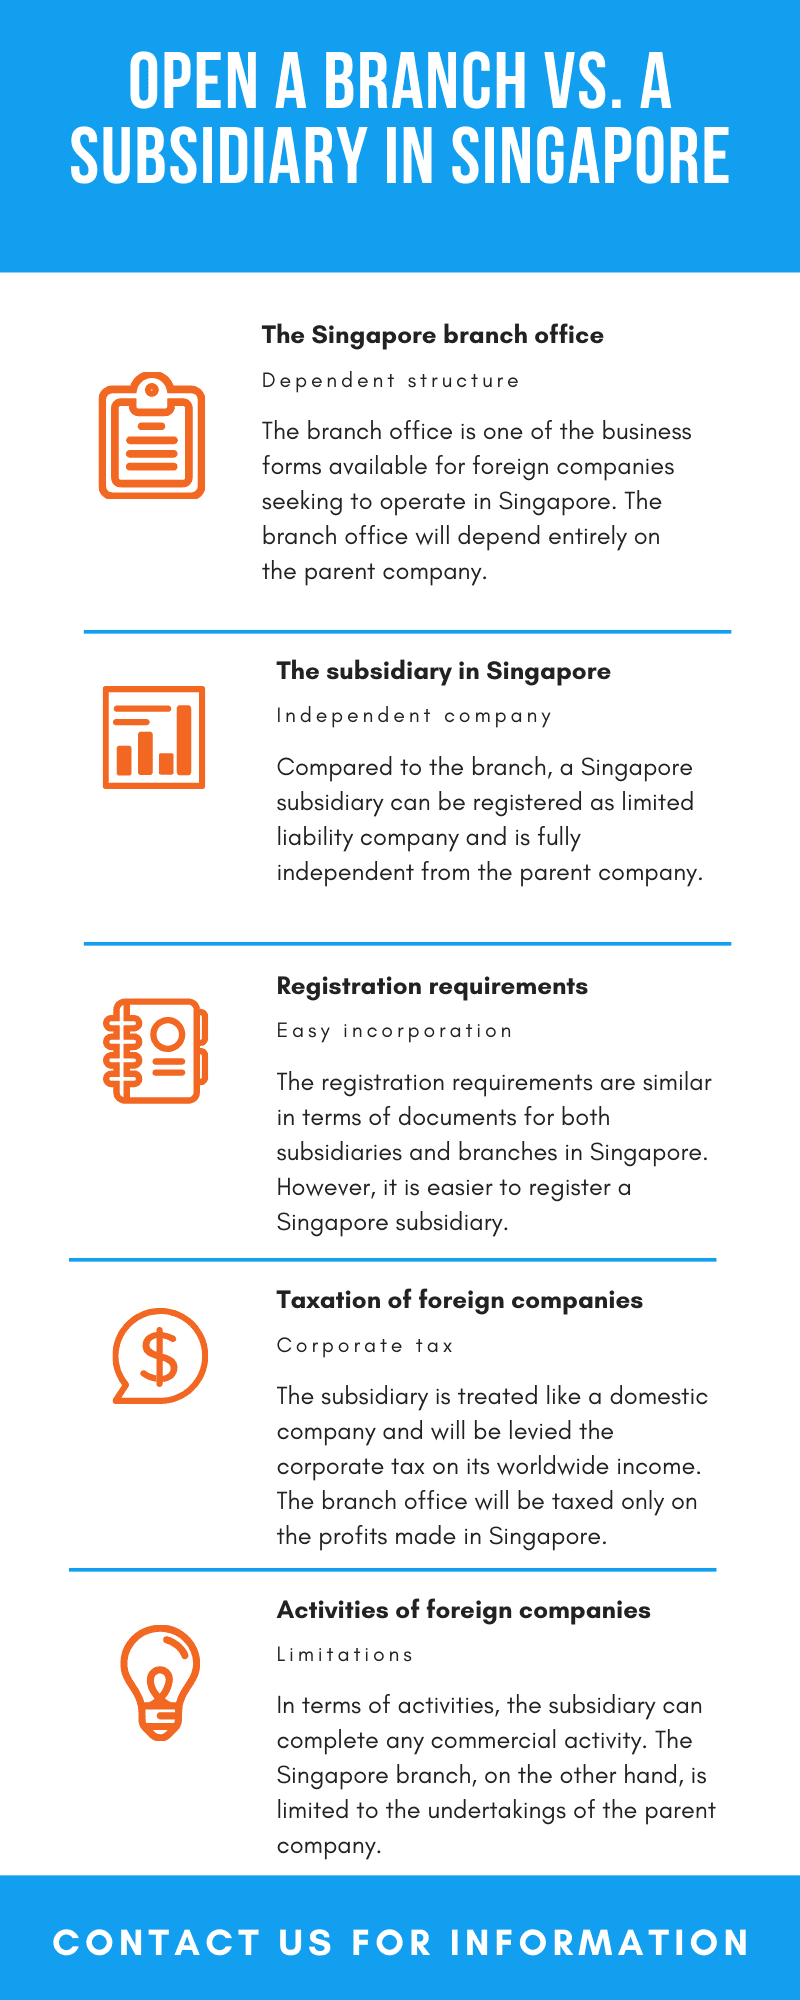 Open-a-Branch-vs-a-Subsidiary-in-Singapore.png